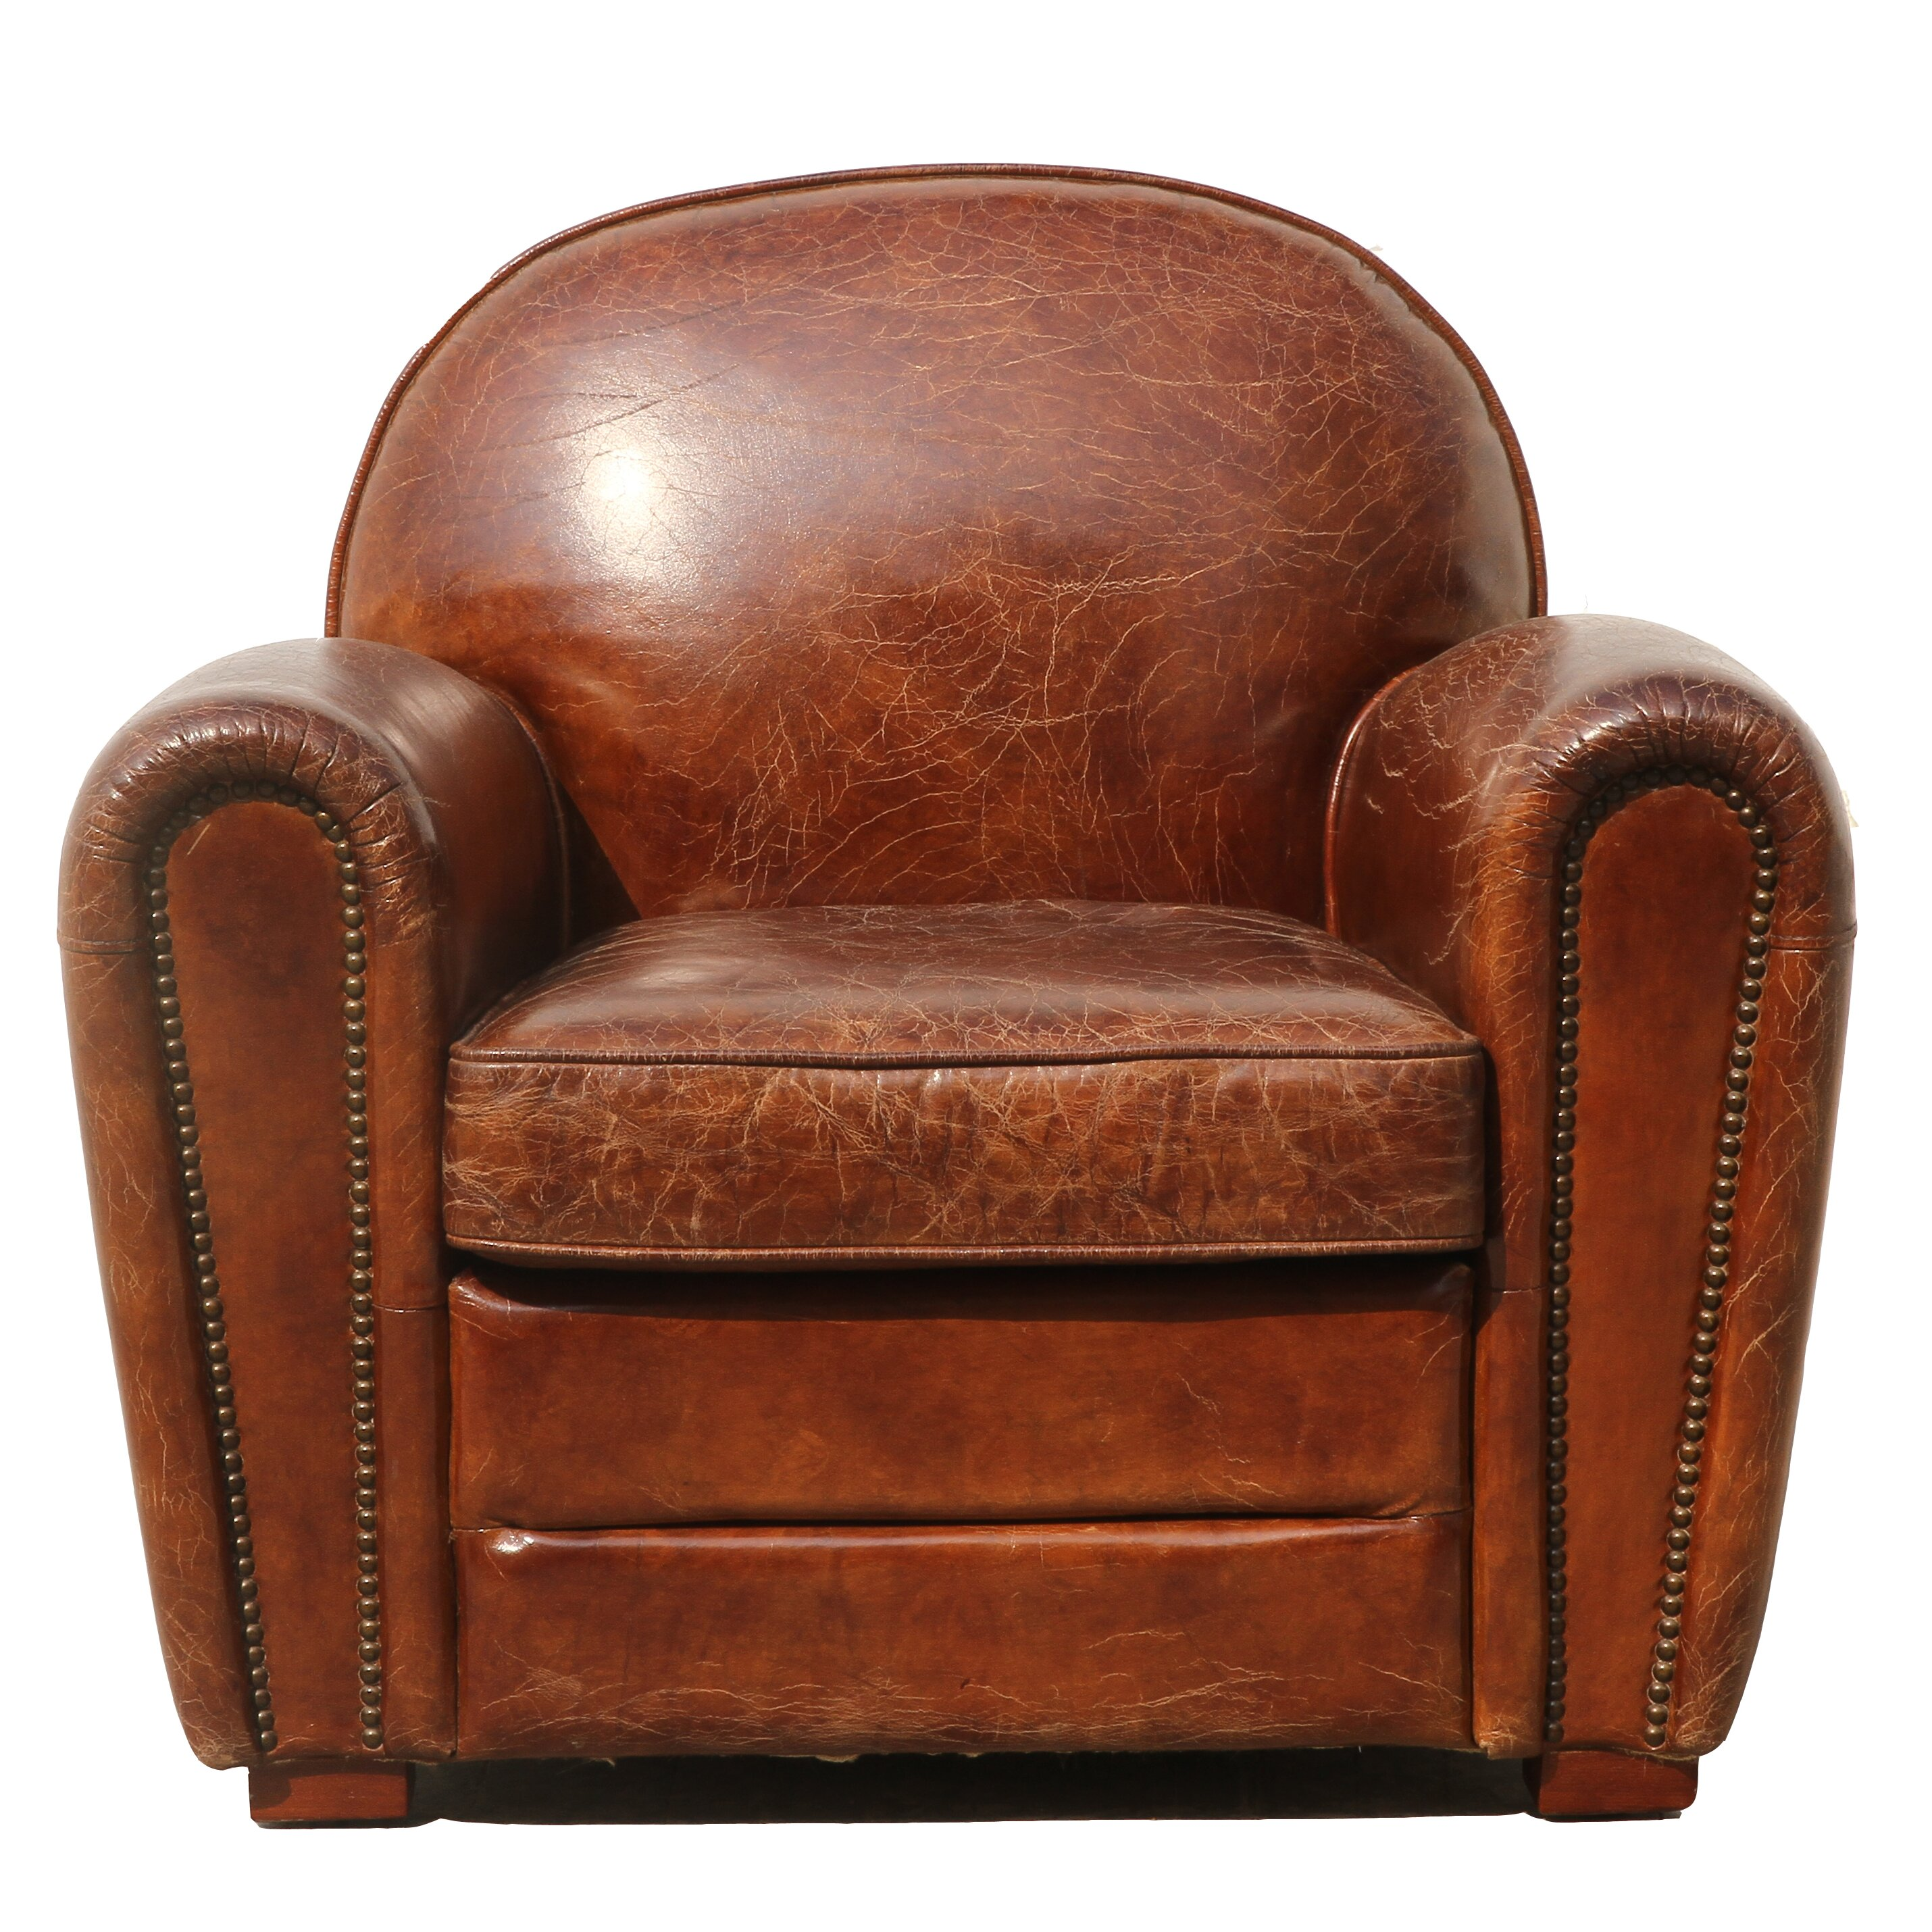 Paris Leather Memory Foam Chair Sofa Bed